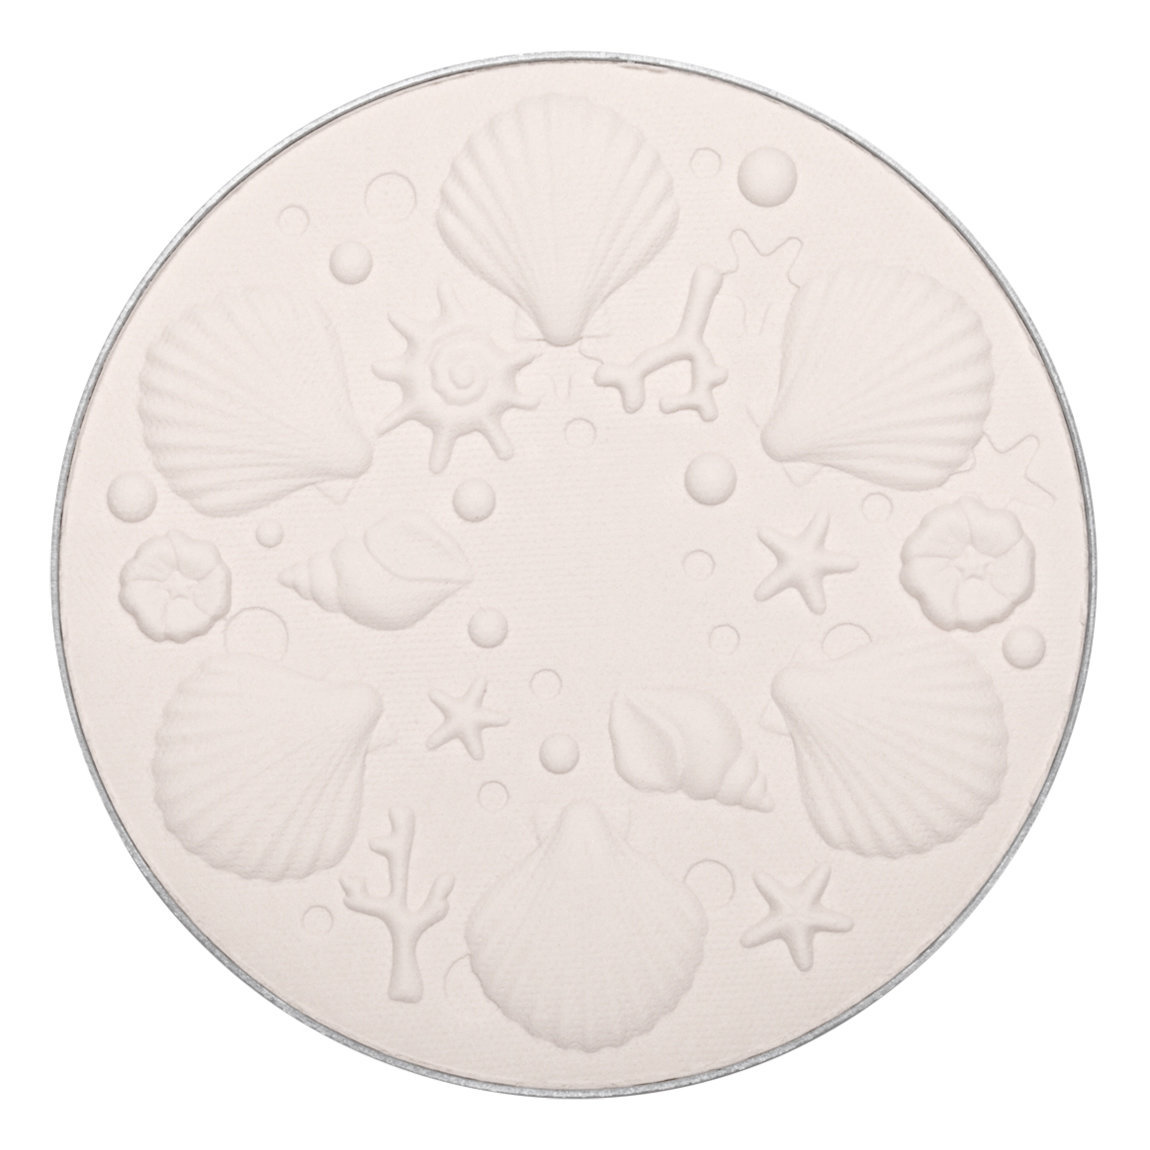 Anna Sui Brightening Face Powder Mini (Refill) product smear.